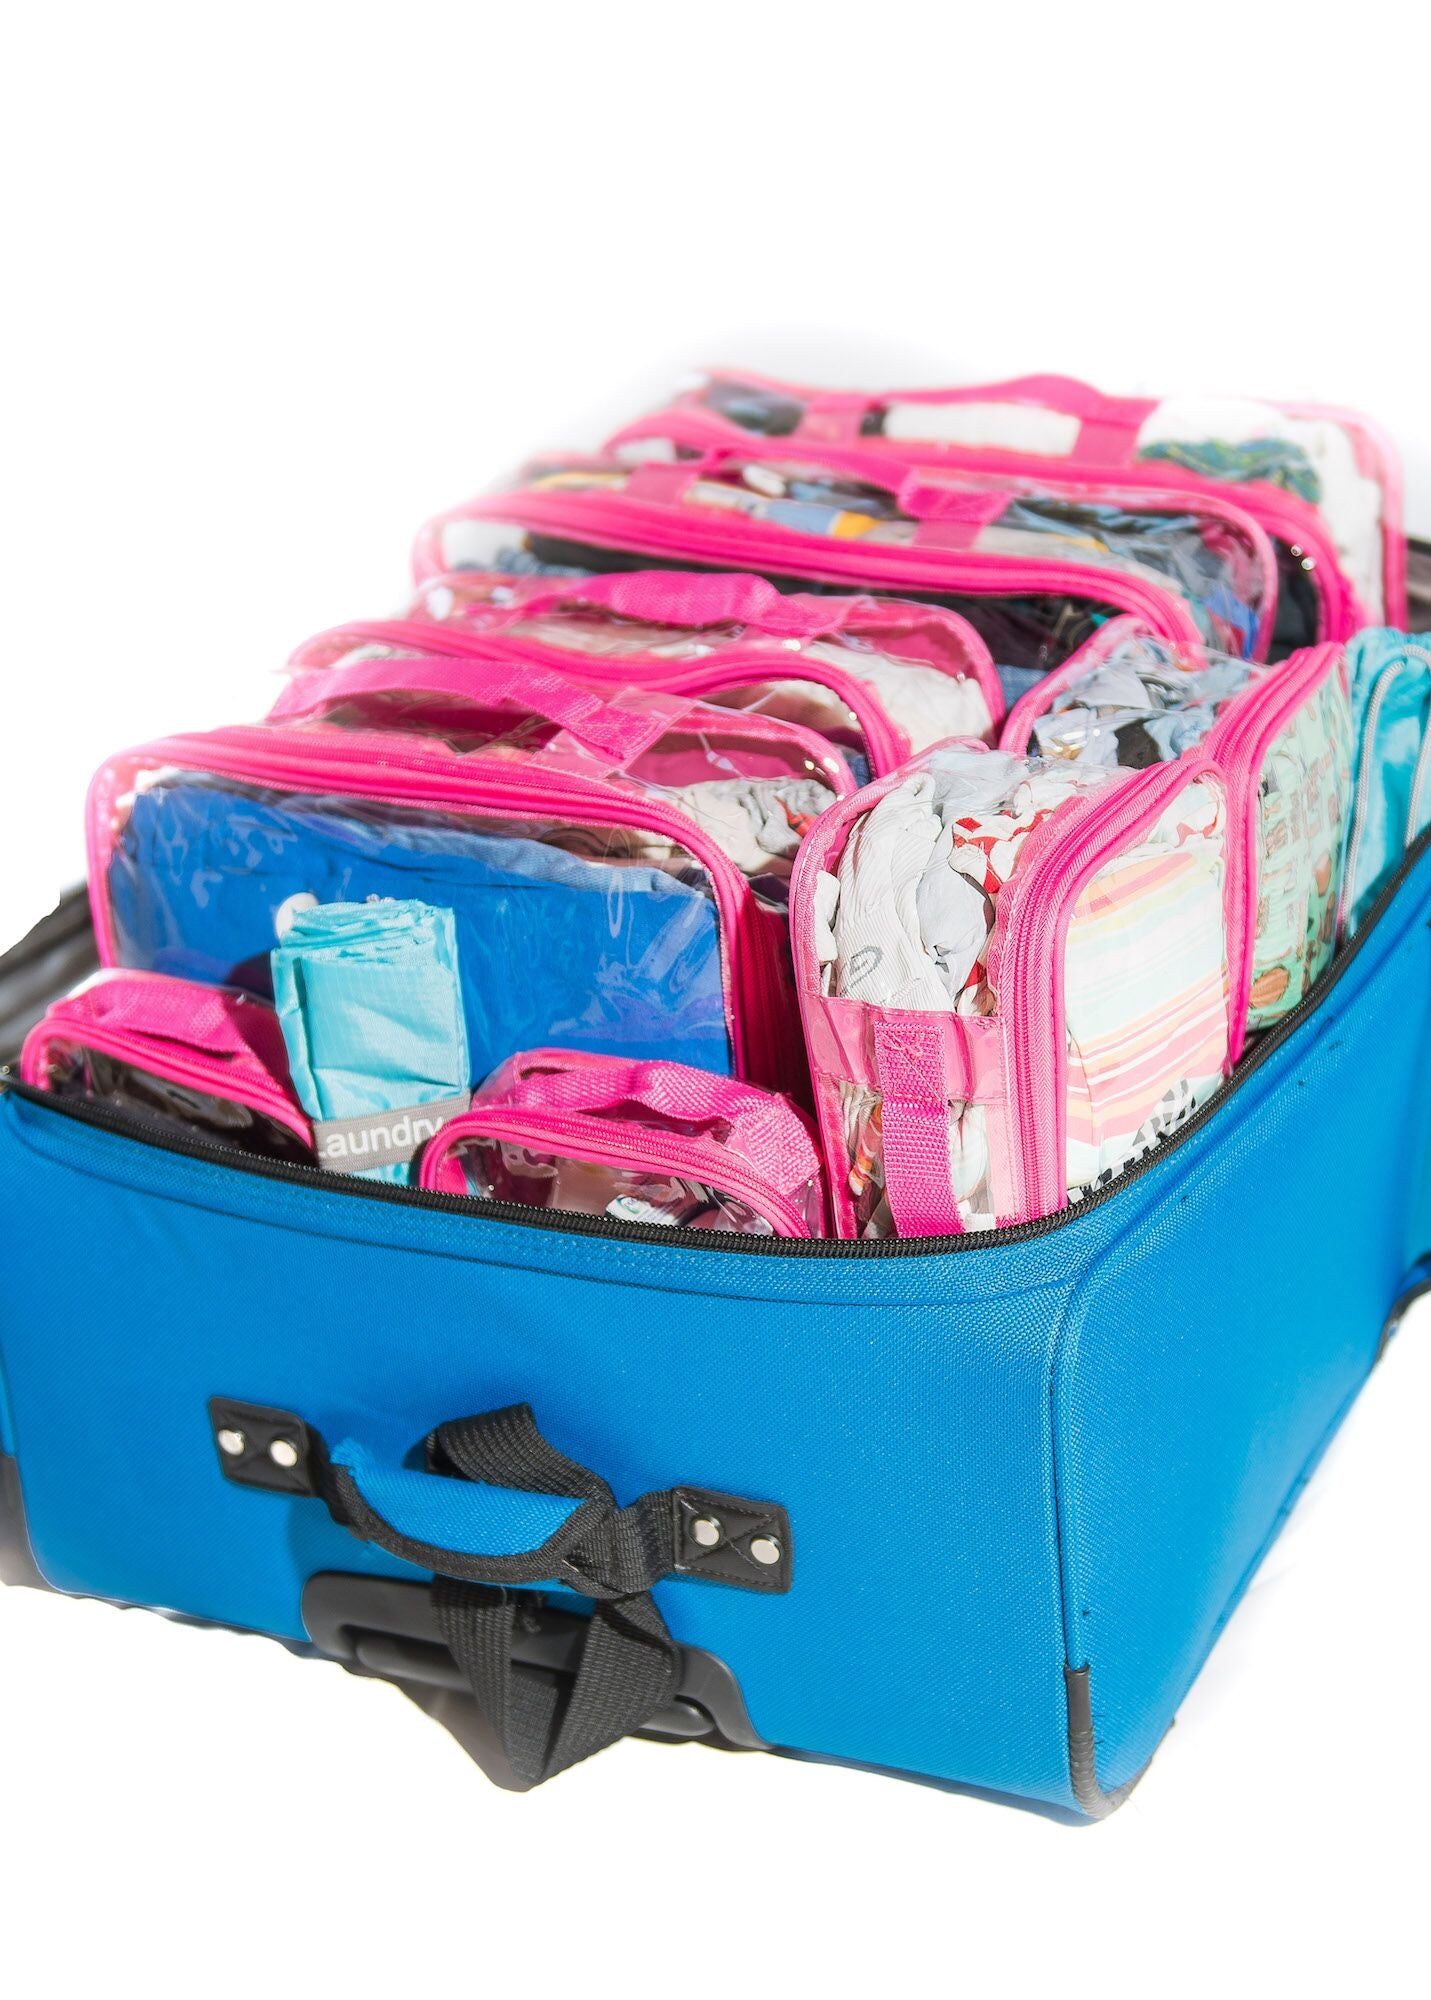 Luggage organizer set in pink